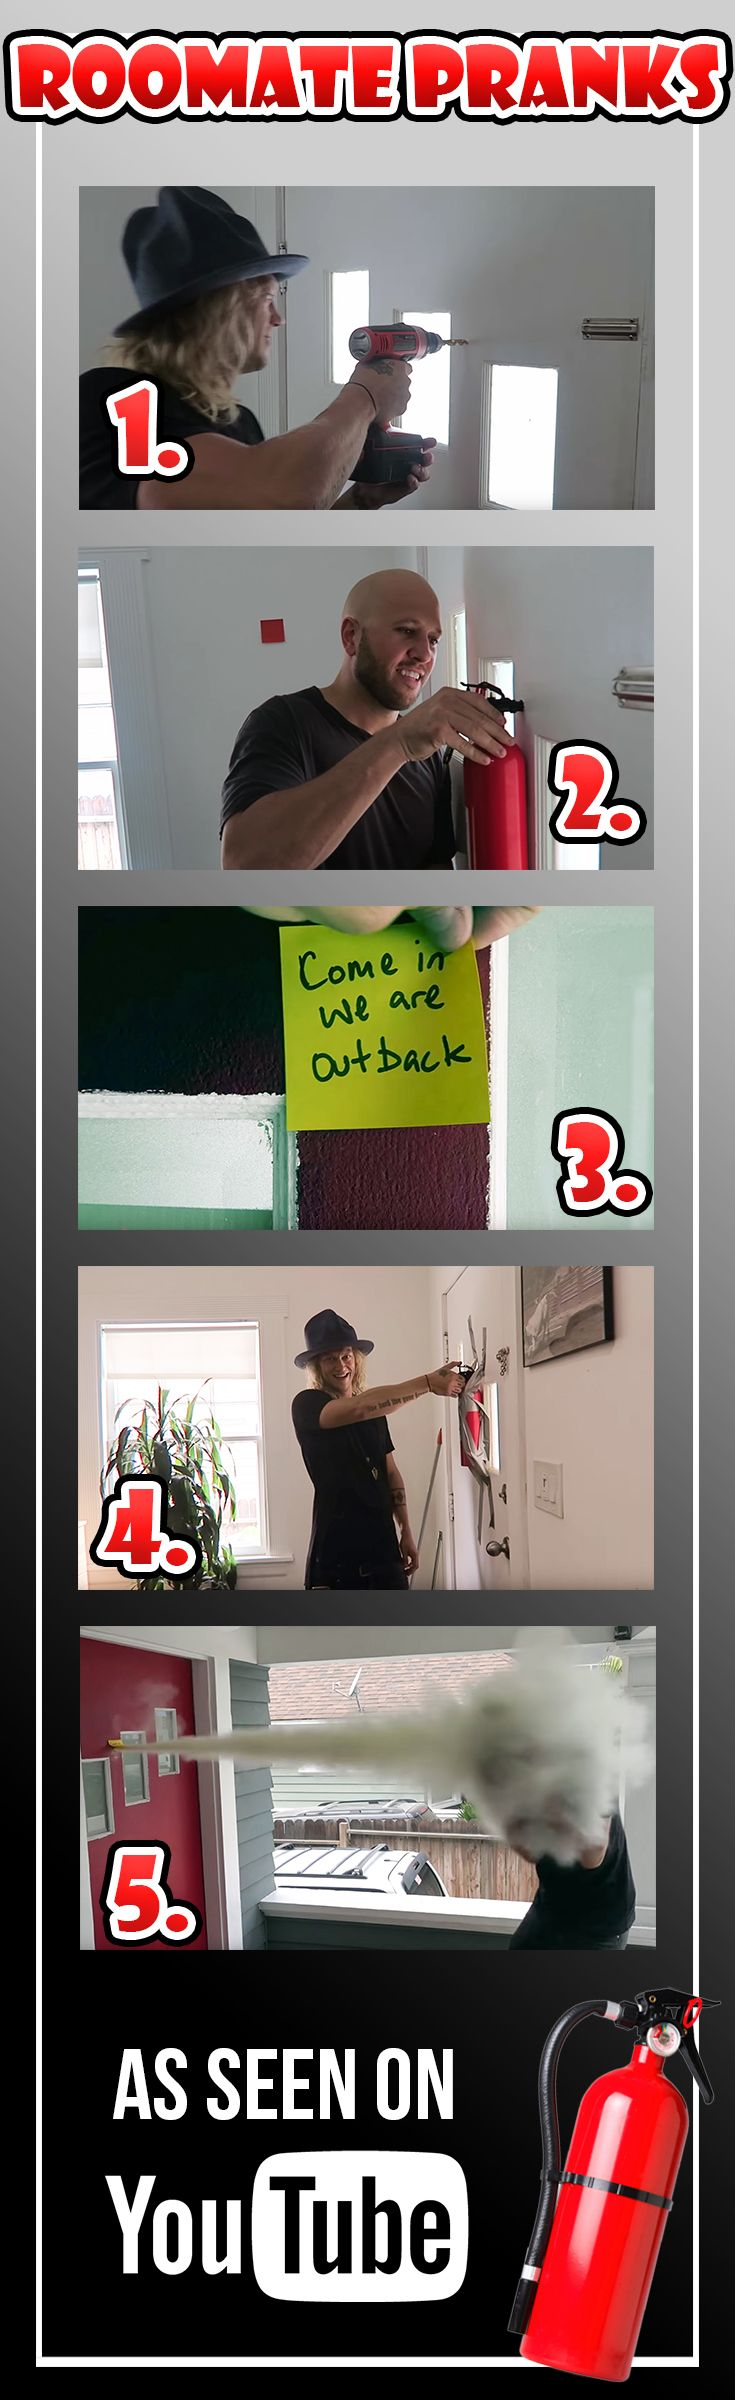 6 roommate pranks this prank idea is one of the most epic practical jokes to